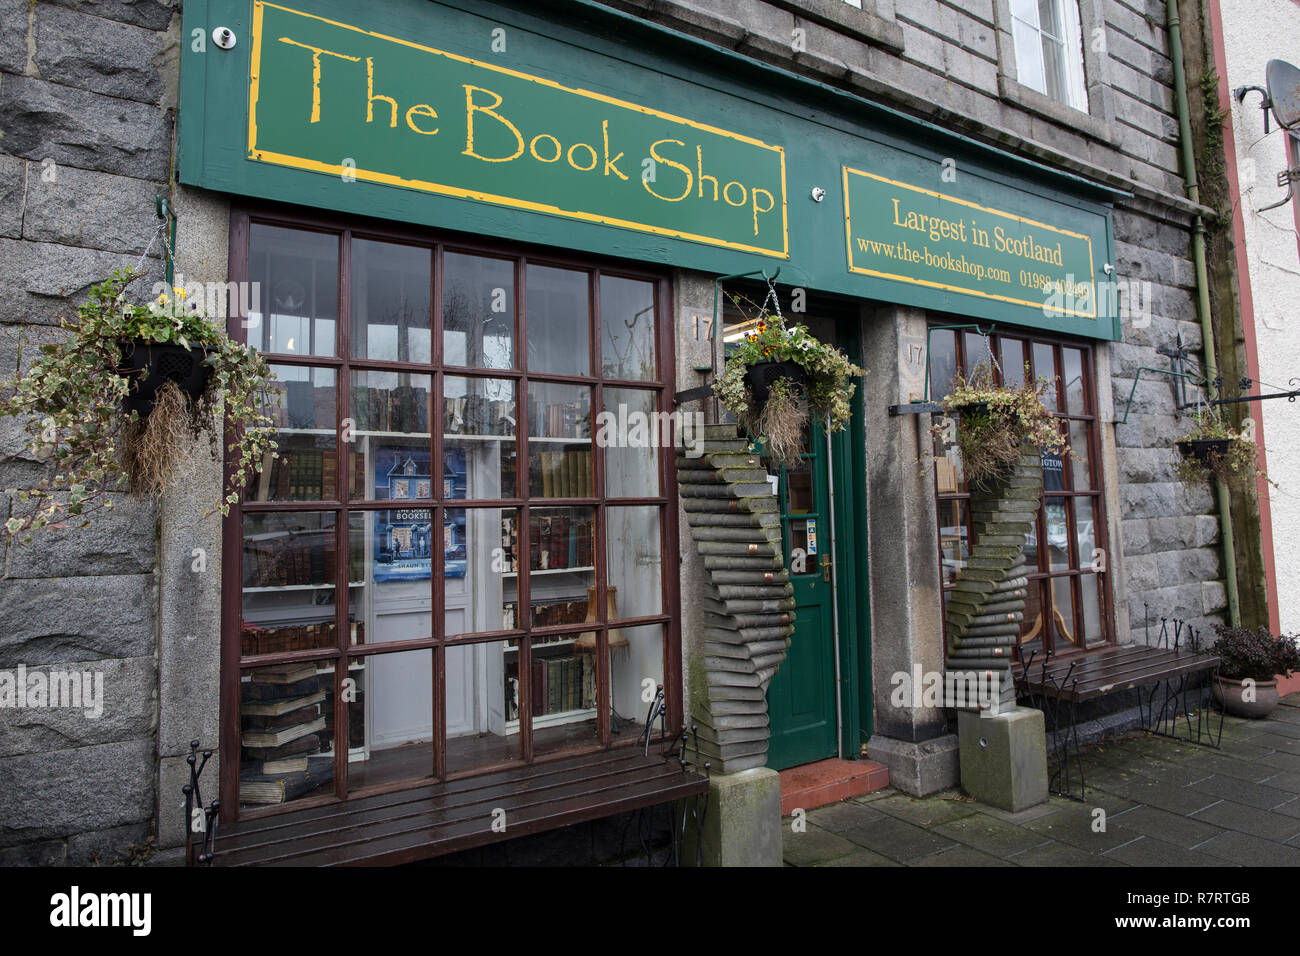 The Diary of a Bookseller author Shaun Bythell at Scotland's biggest second-hand bookshop premises in Wigtown, where he wrote his best selling book. - Stock Image